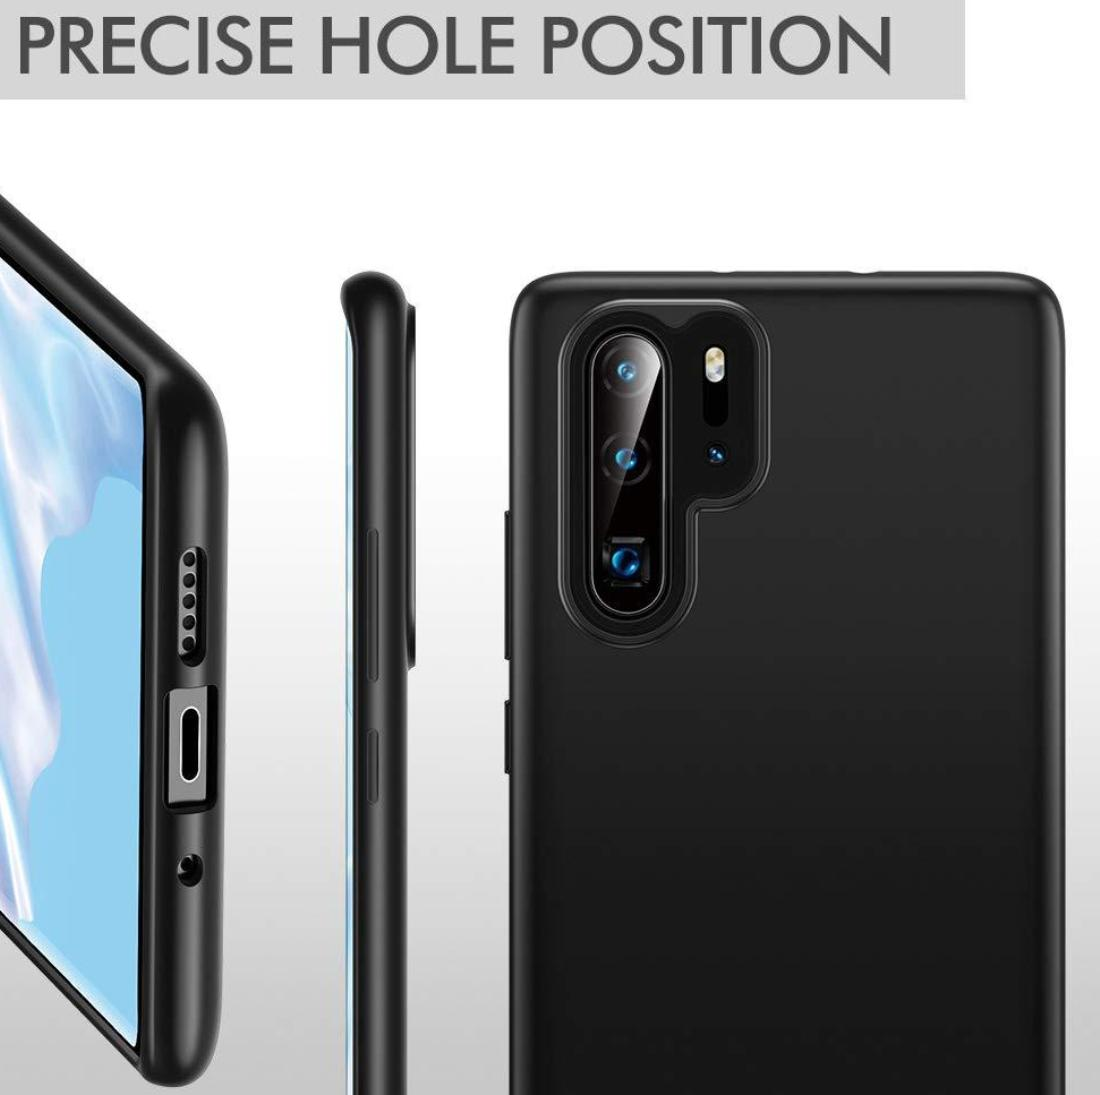 Case-for-Huawei-P30-Pro-Full-Body-Ultra-Thin-Slim-TPU-Protective-Phone-Cover thumbnail 9